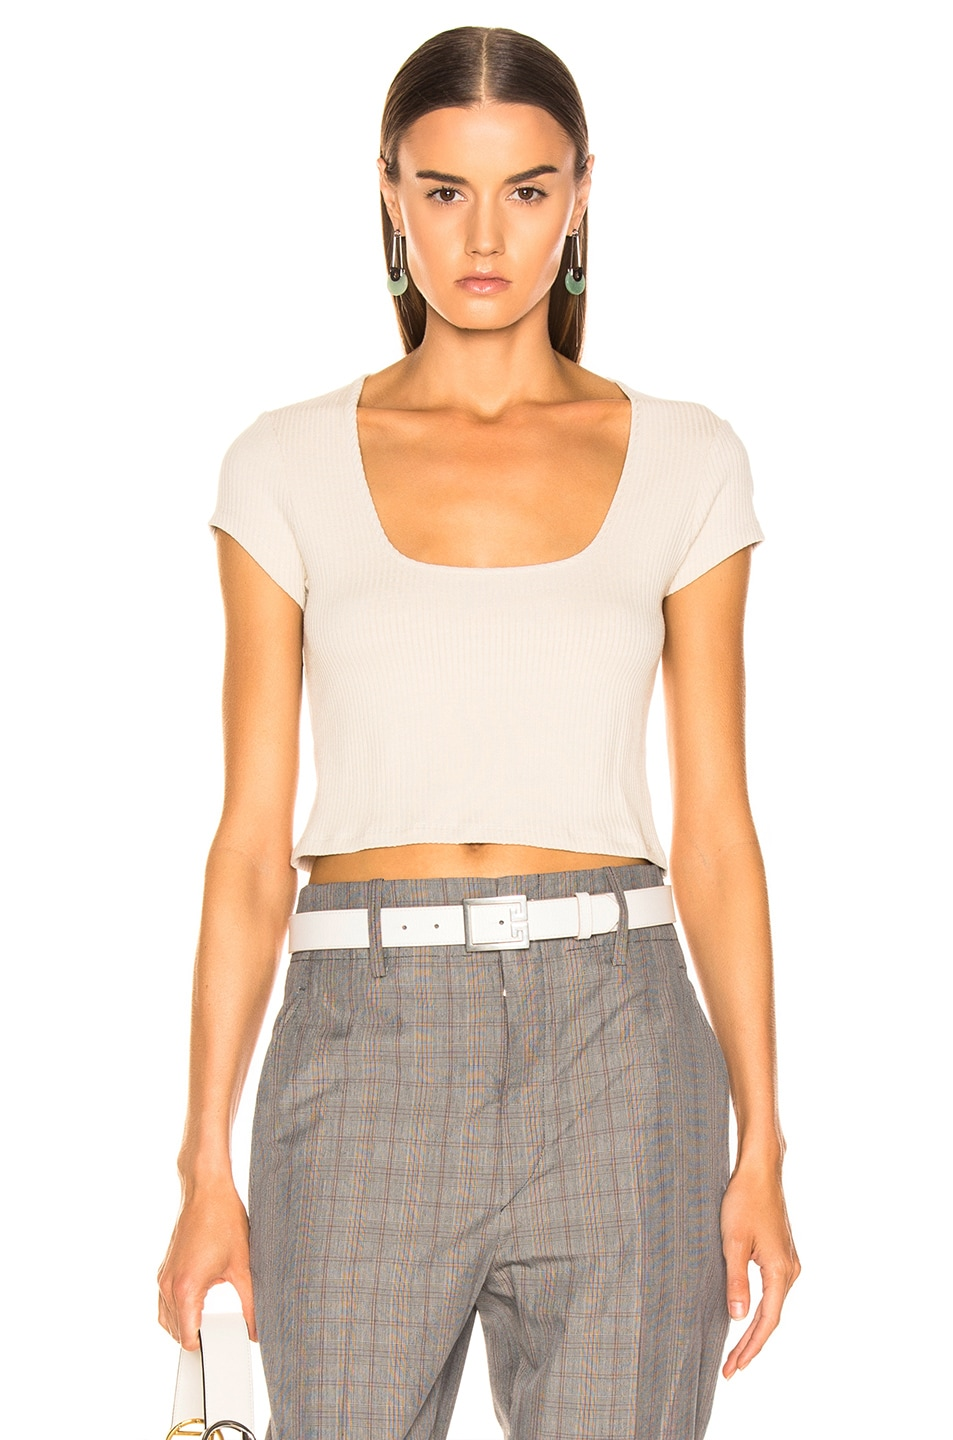 Image 1 of The Range Alloy Rib Cropped Tee in Limestone